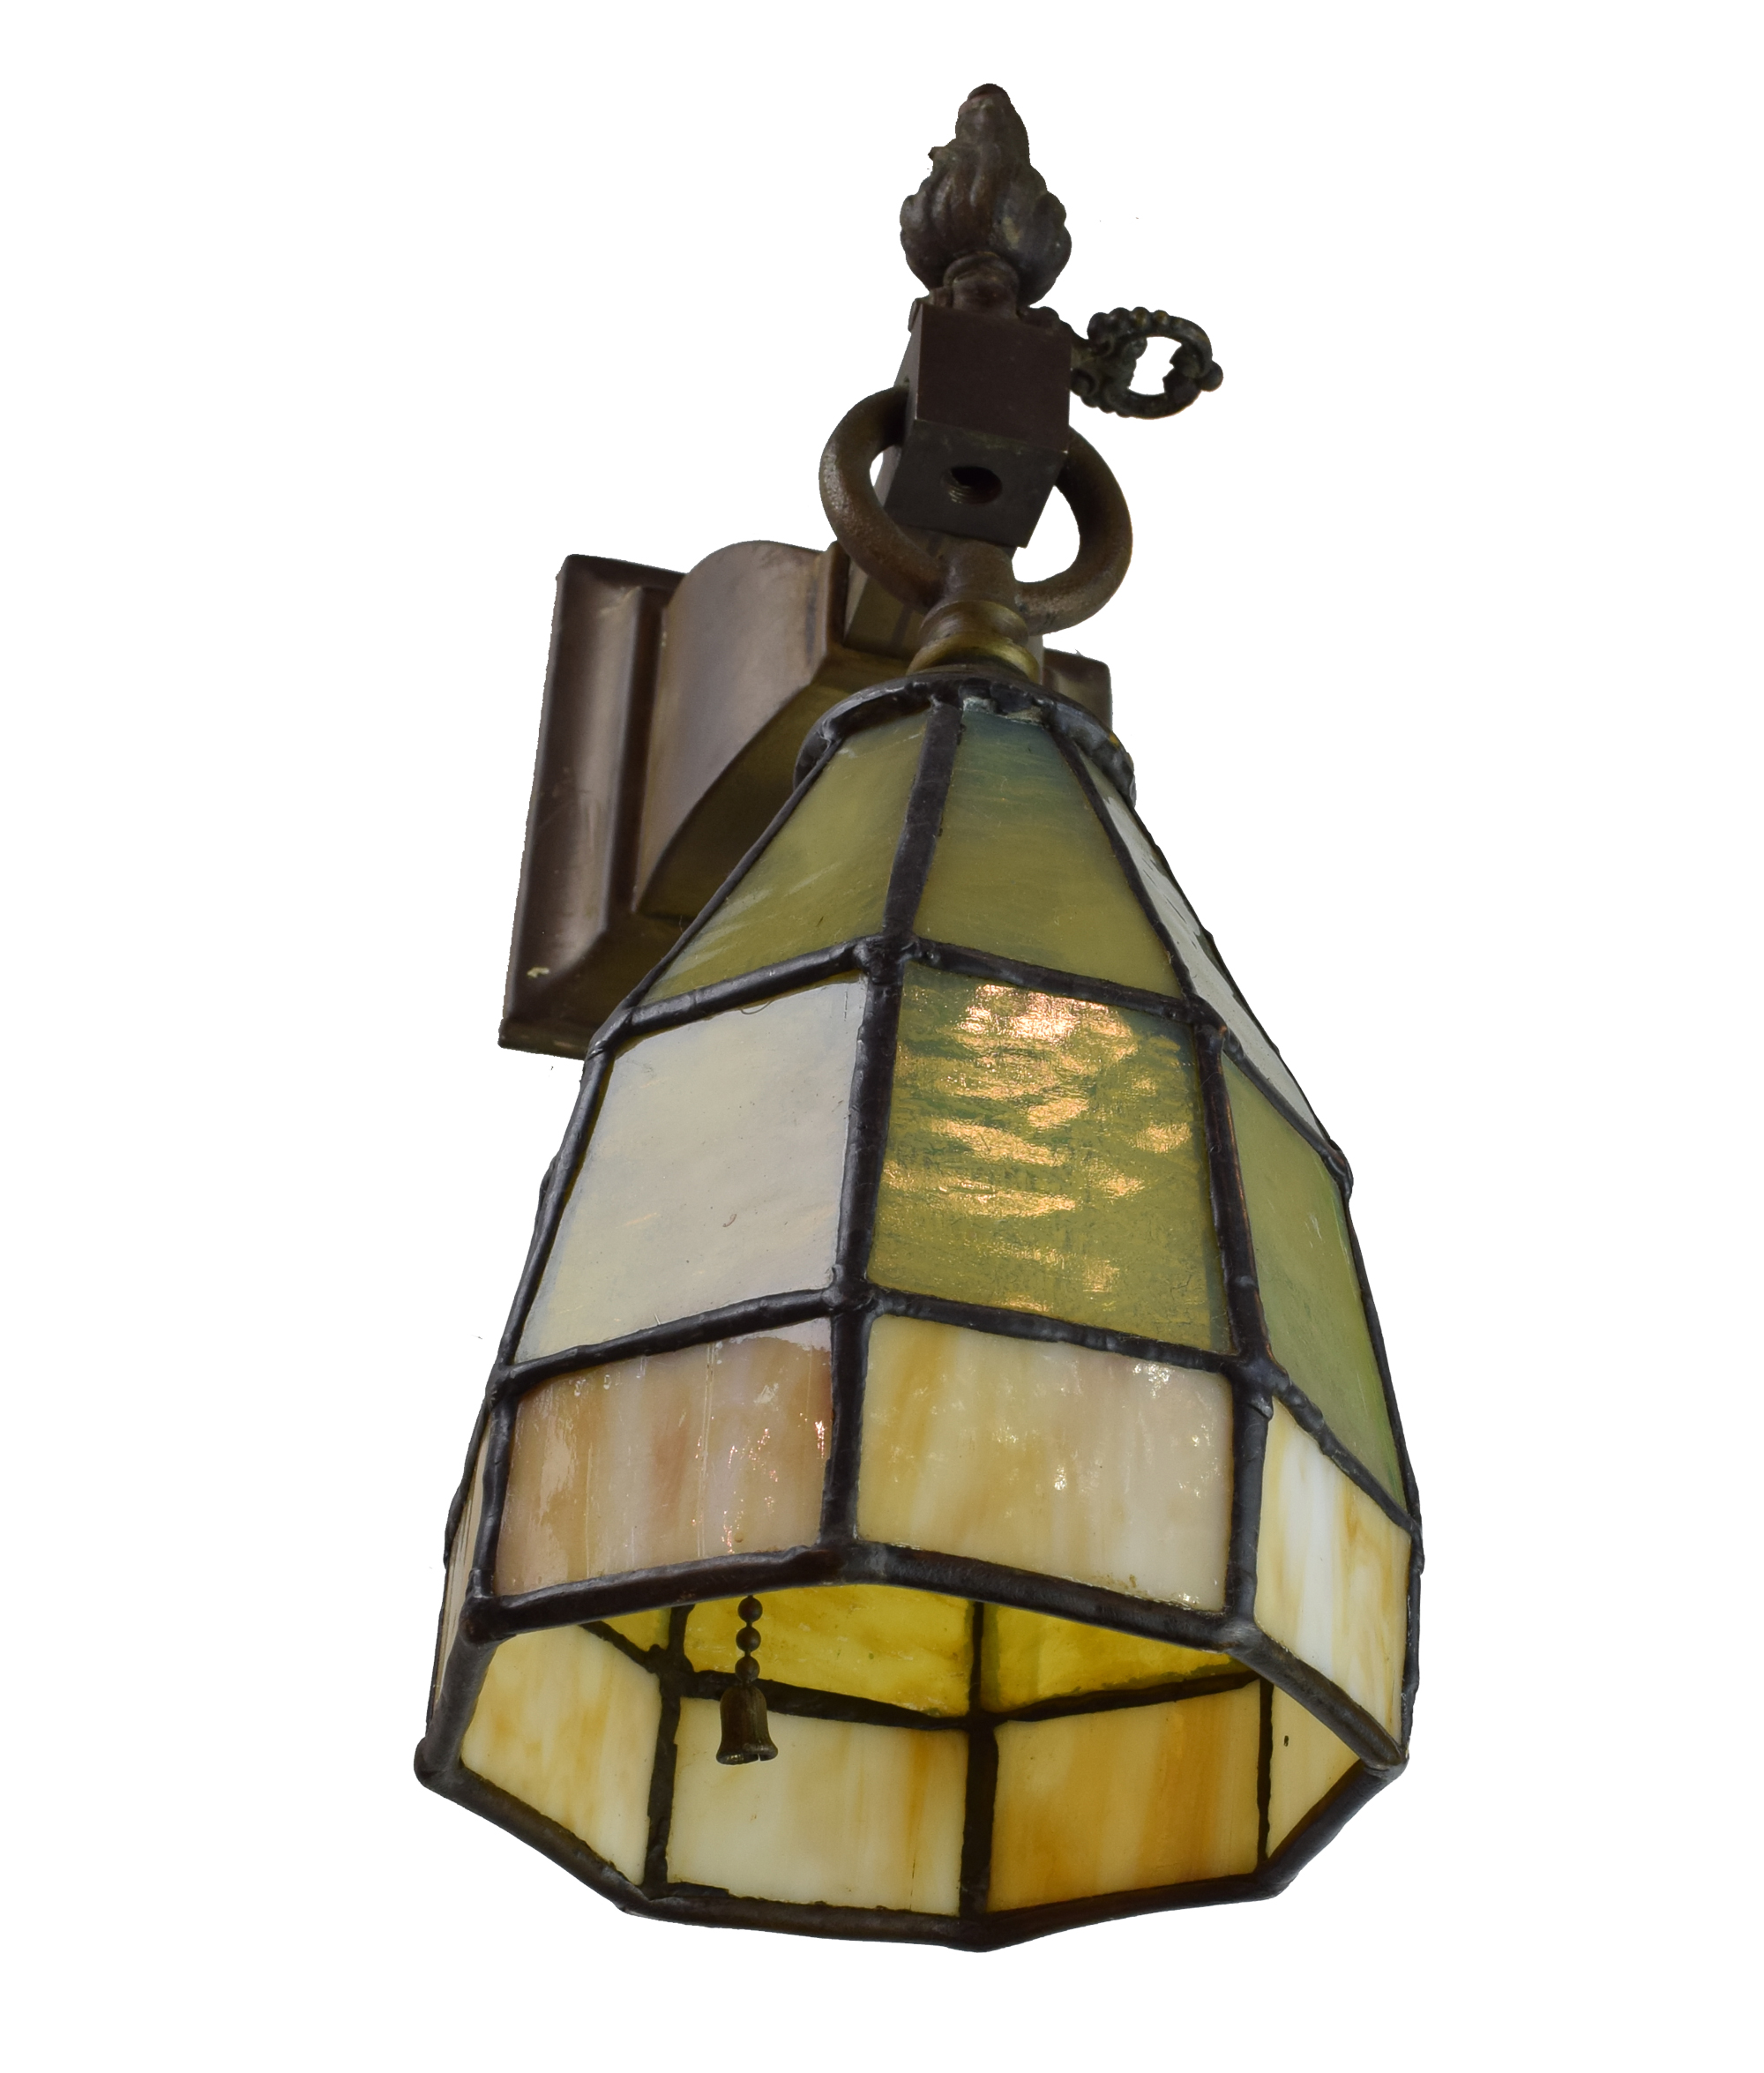 Architectural Antique's Gothic Arts & Crafts Sconce with Leaded Glass Shades